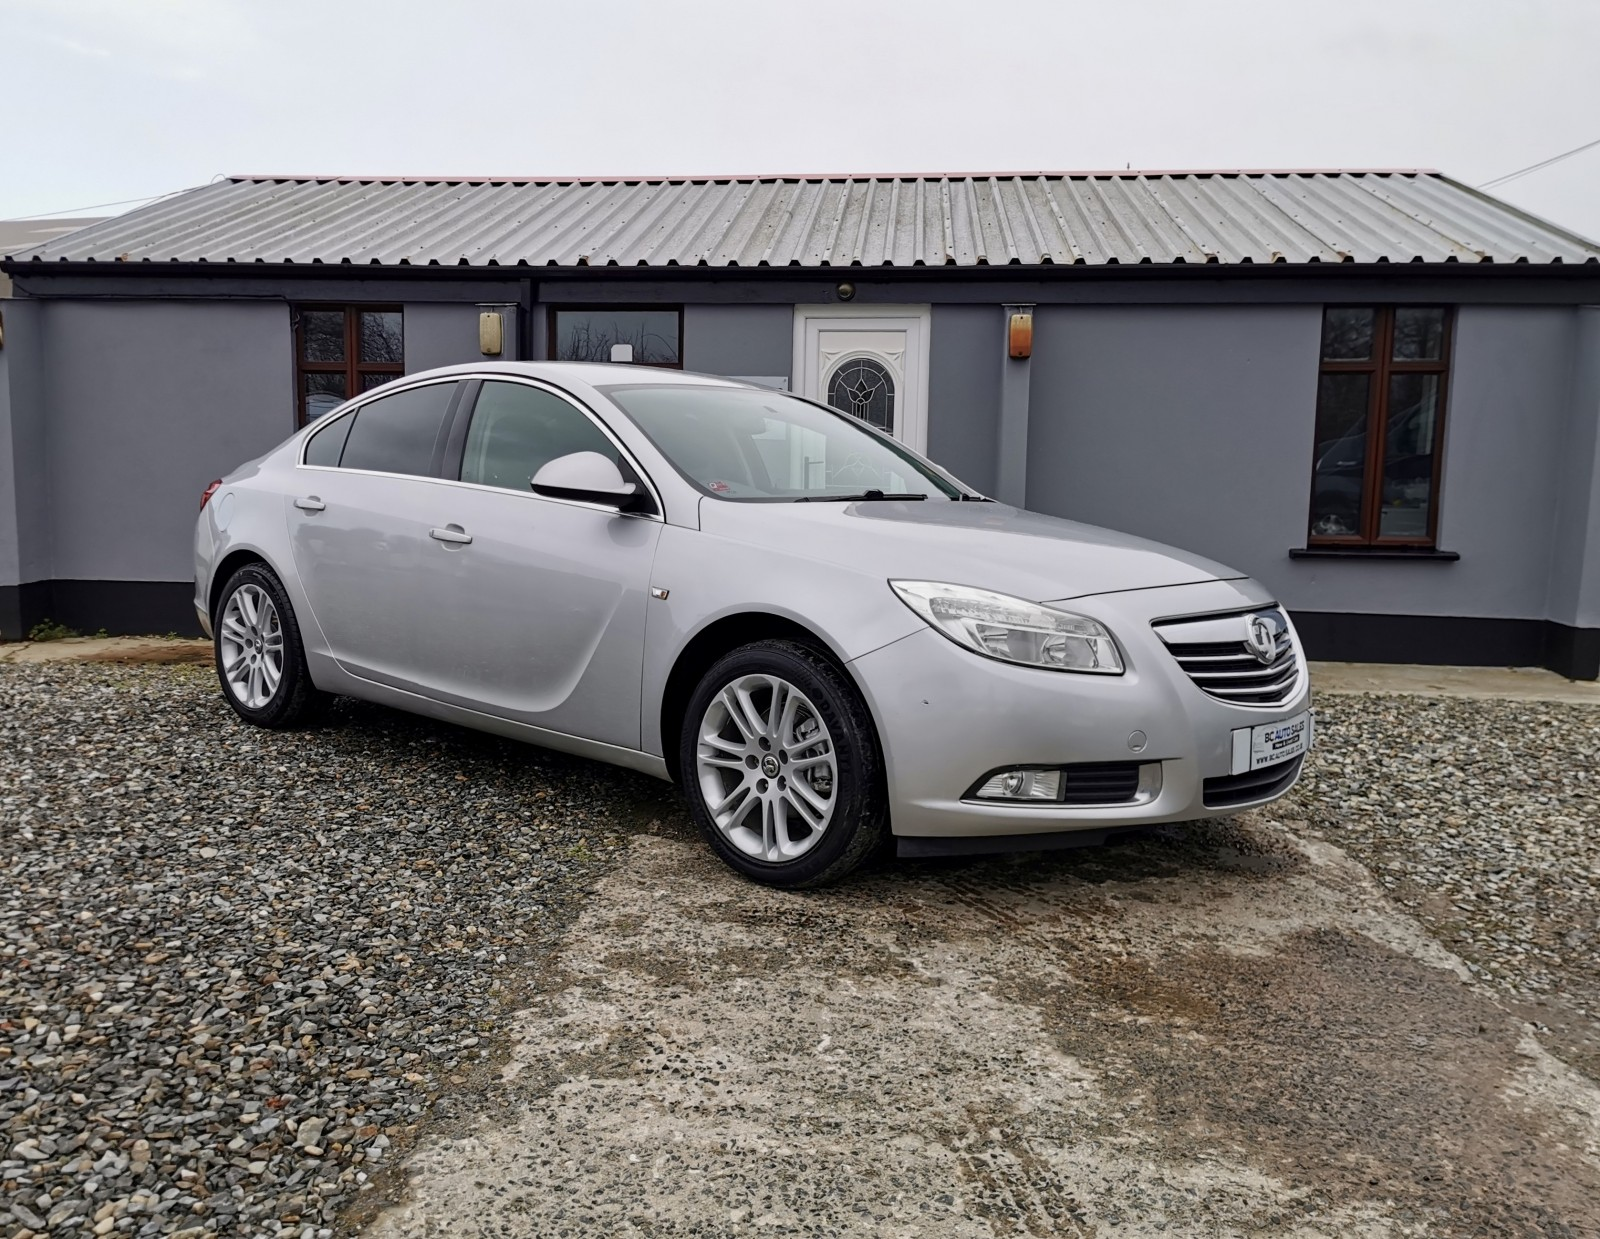 2009 Vauxhall Insignia EXCLUSIV CDTI Diesel Manual – BC Autosales 17A Airfield Road, Eglinton, Londonderry BT47 3PZ, UK